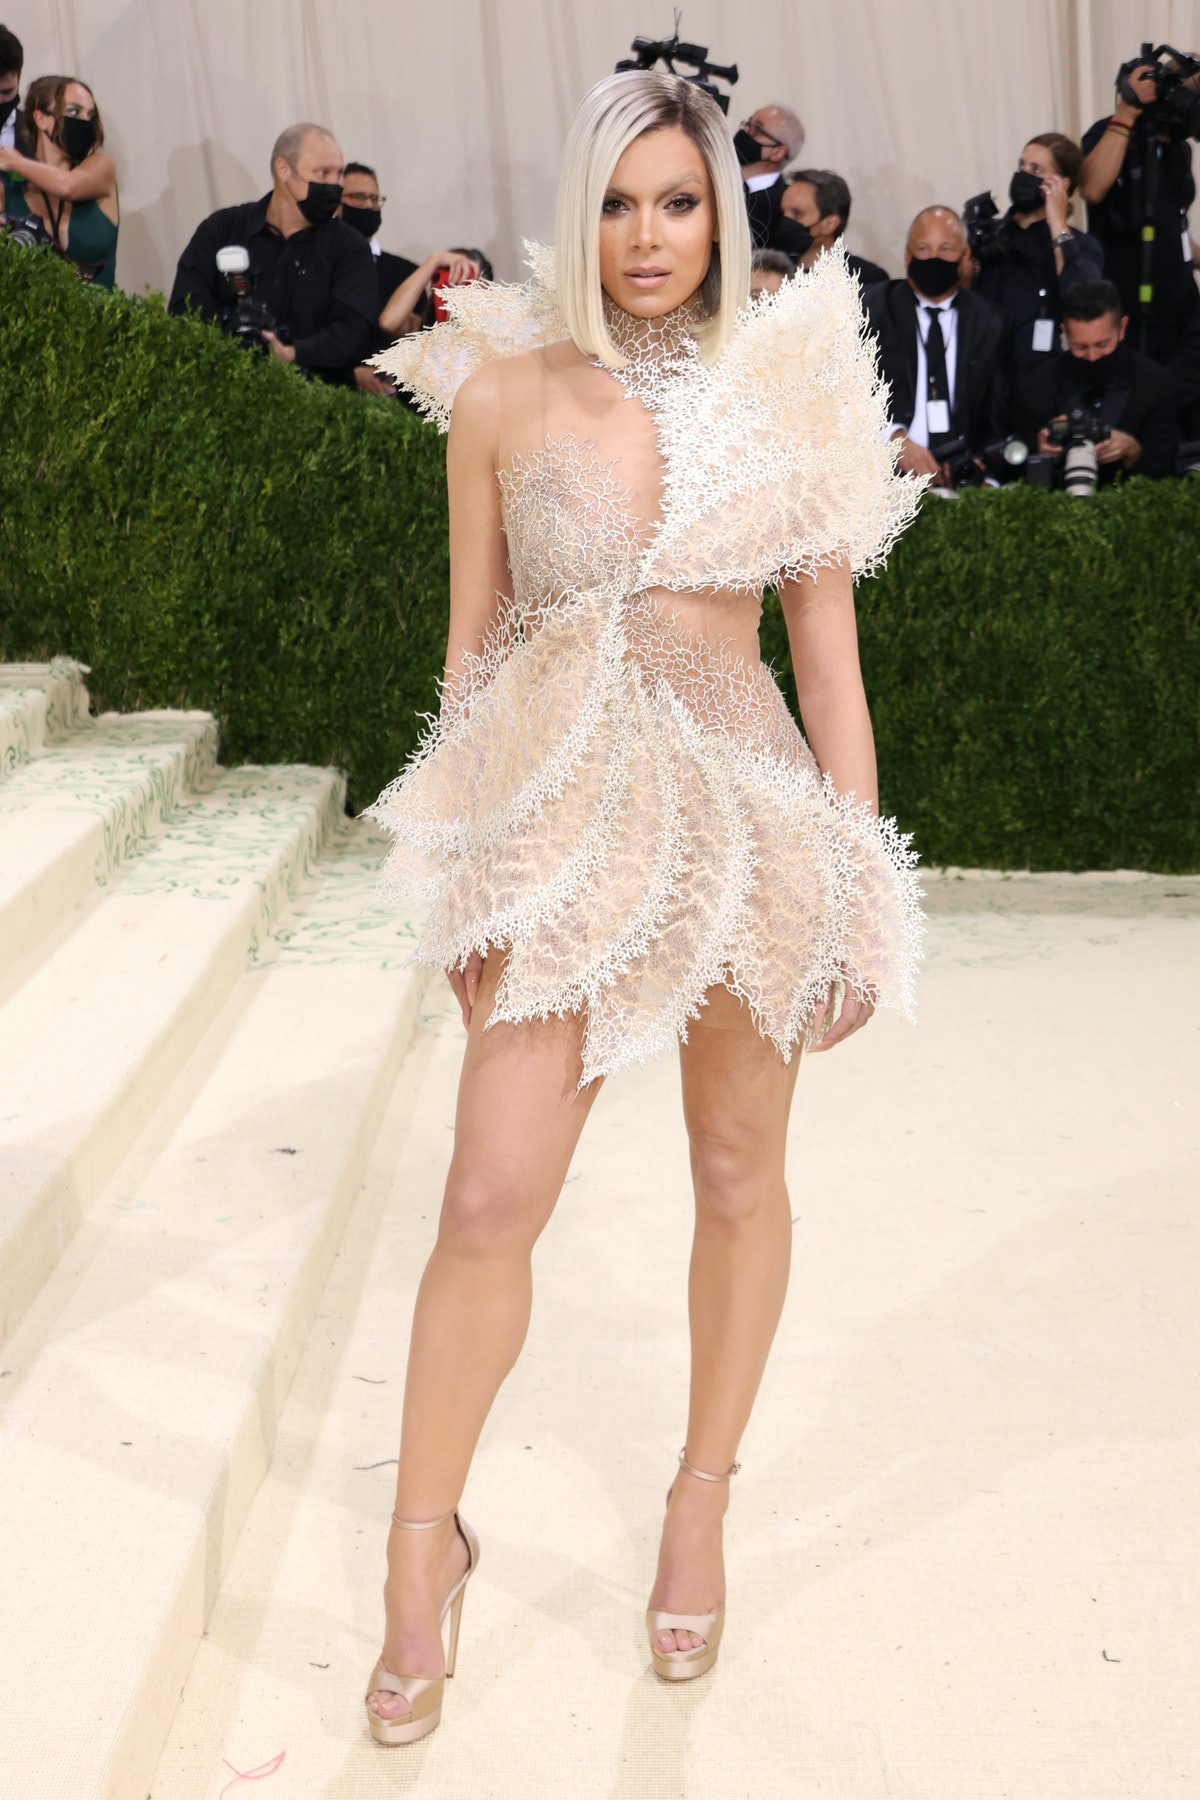 Hailee Steinfeld attends The 2021 Met Gala Celebrating In America: A Lexicon Of Fashion at Metropoli...